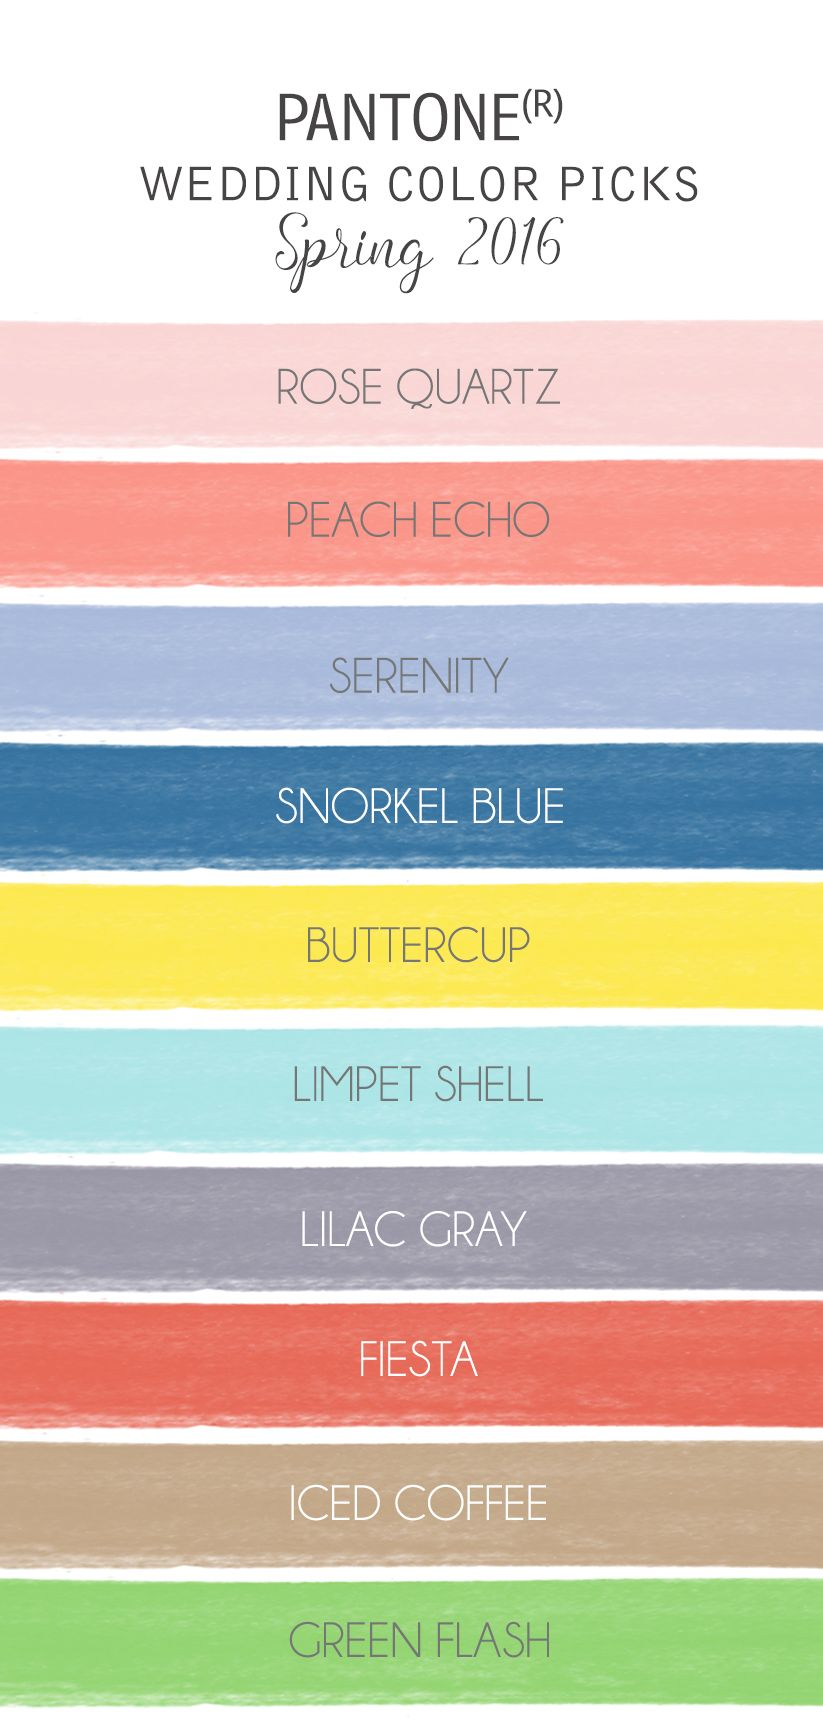 A Quick Guide To The Pantone Color Selections For 2016 Wedding Colors Spring Report